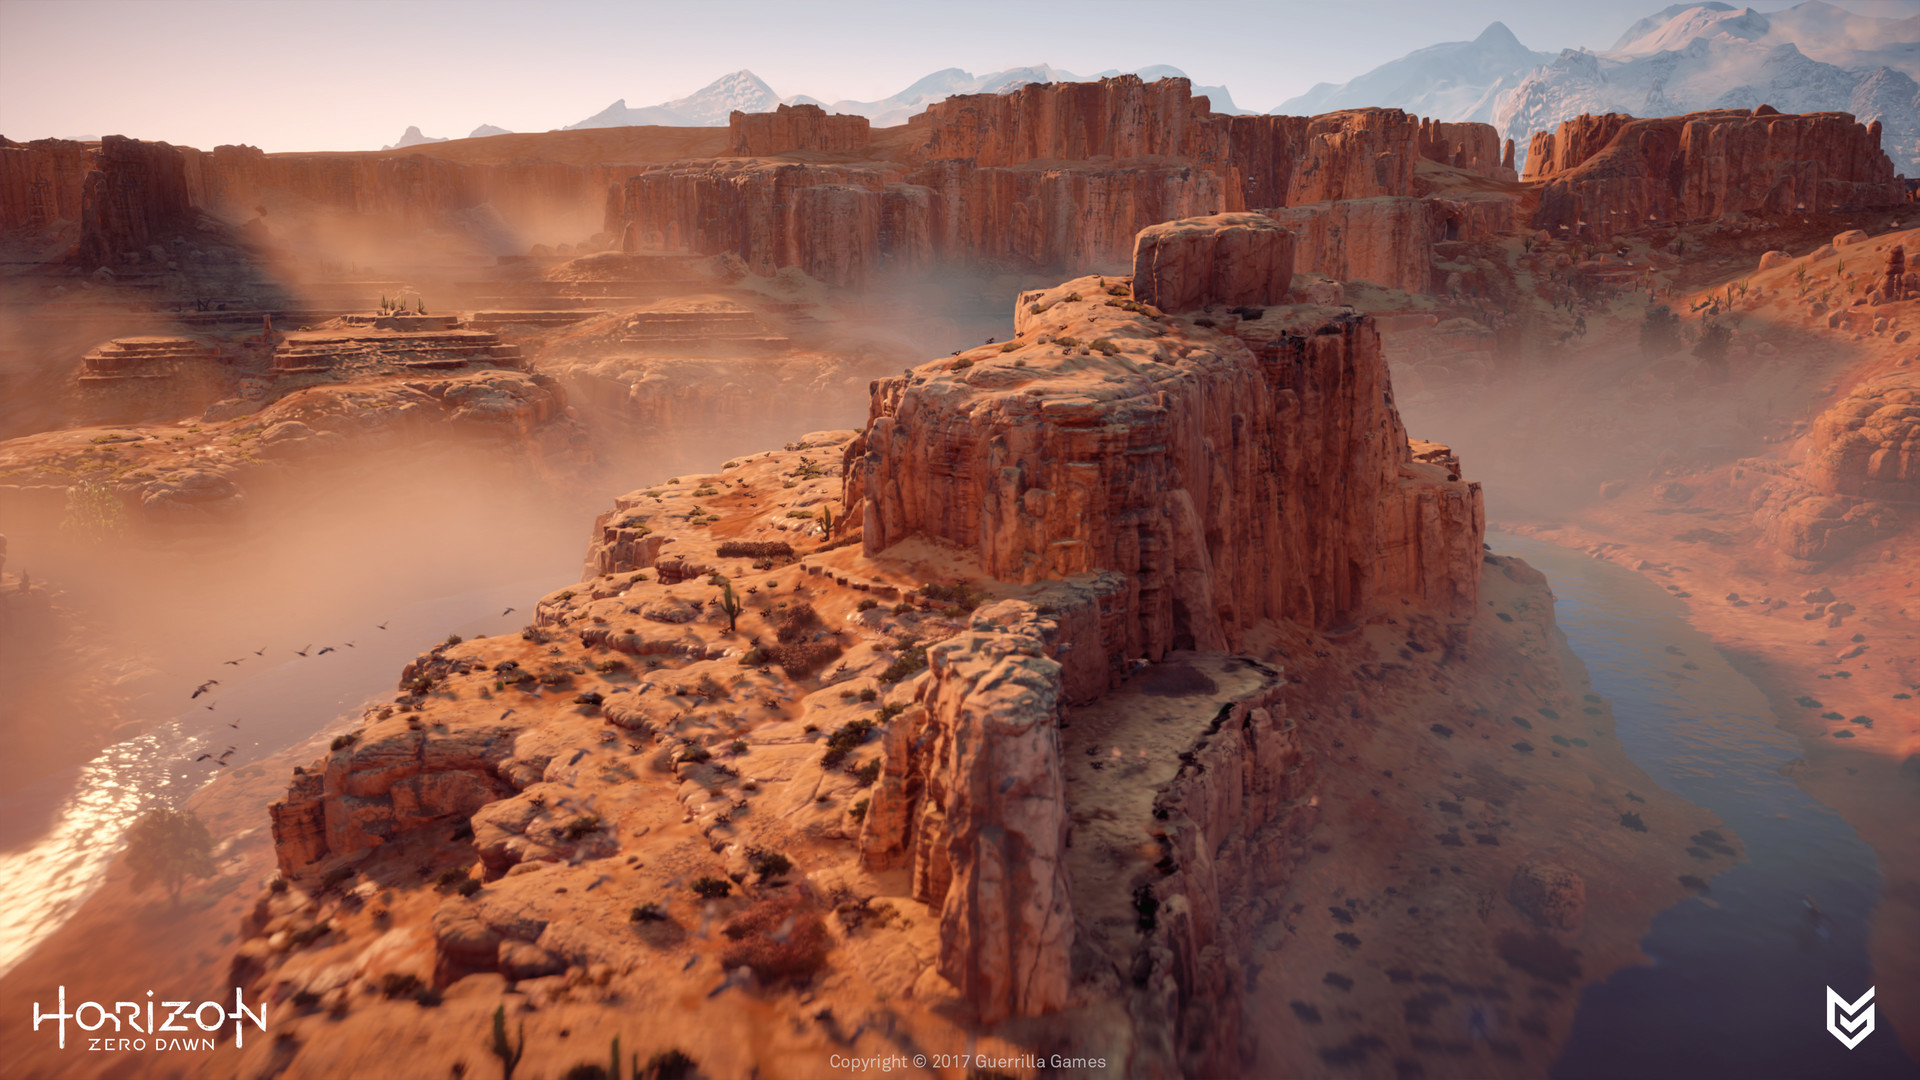 Lukas kolz gatelands canyon inspired by the colorado river 02